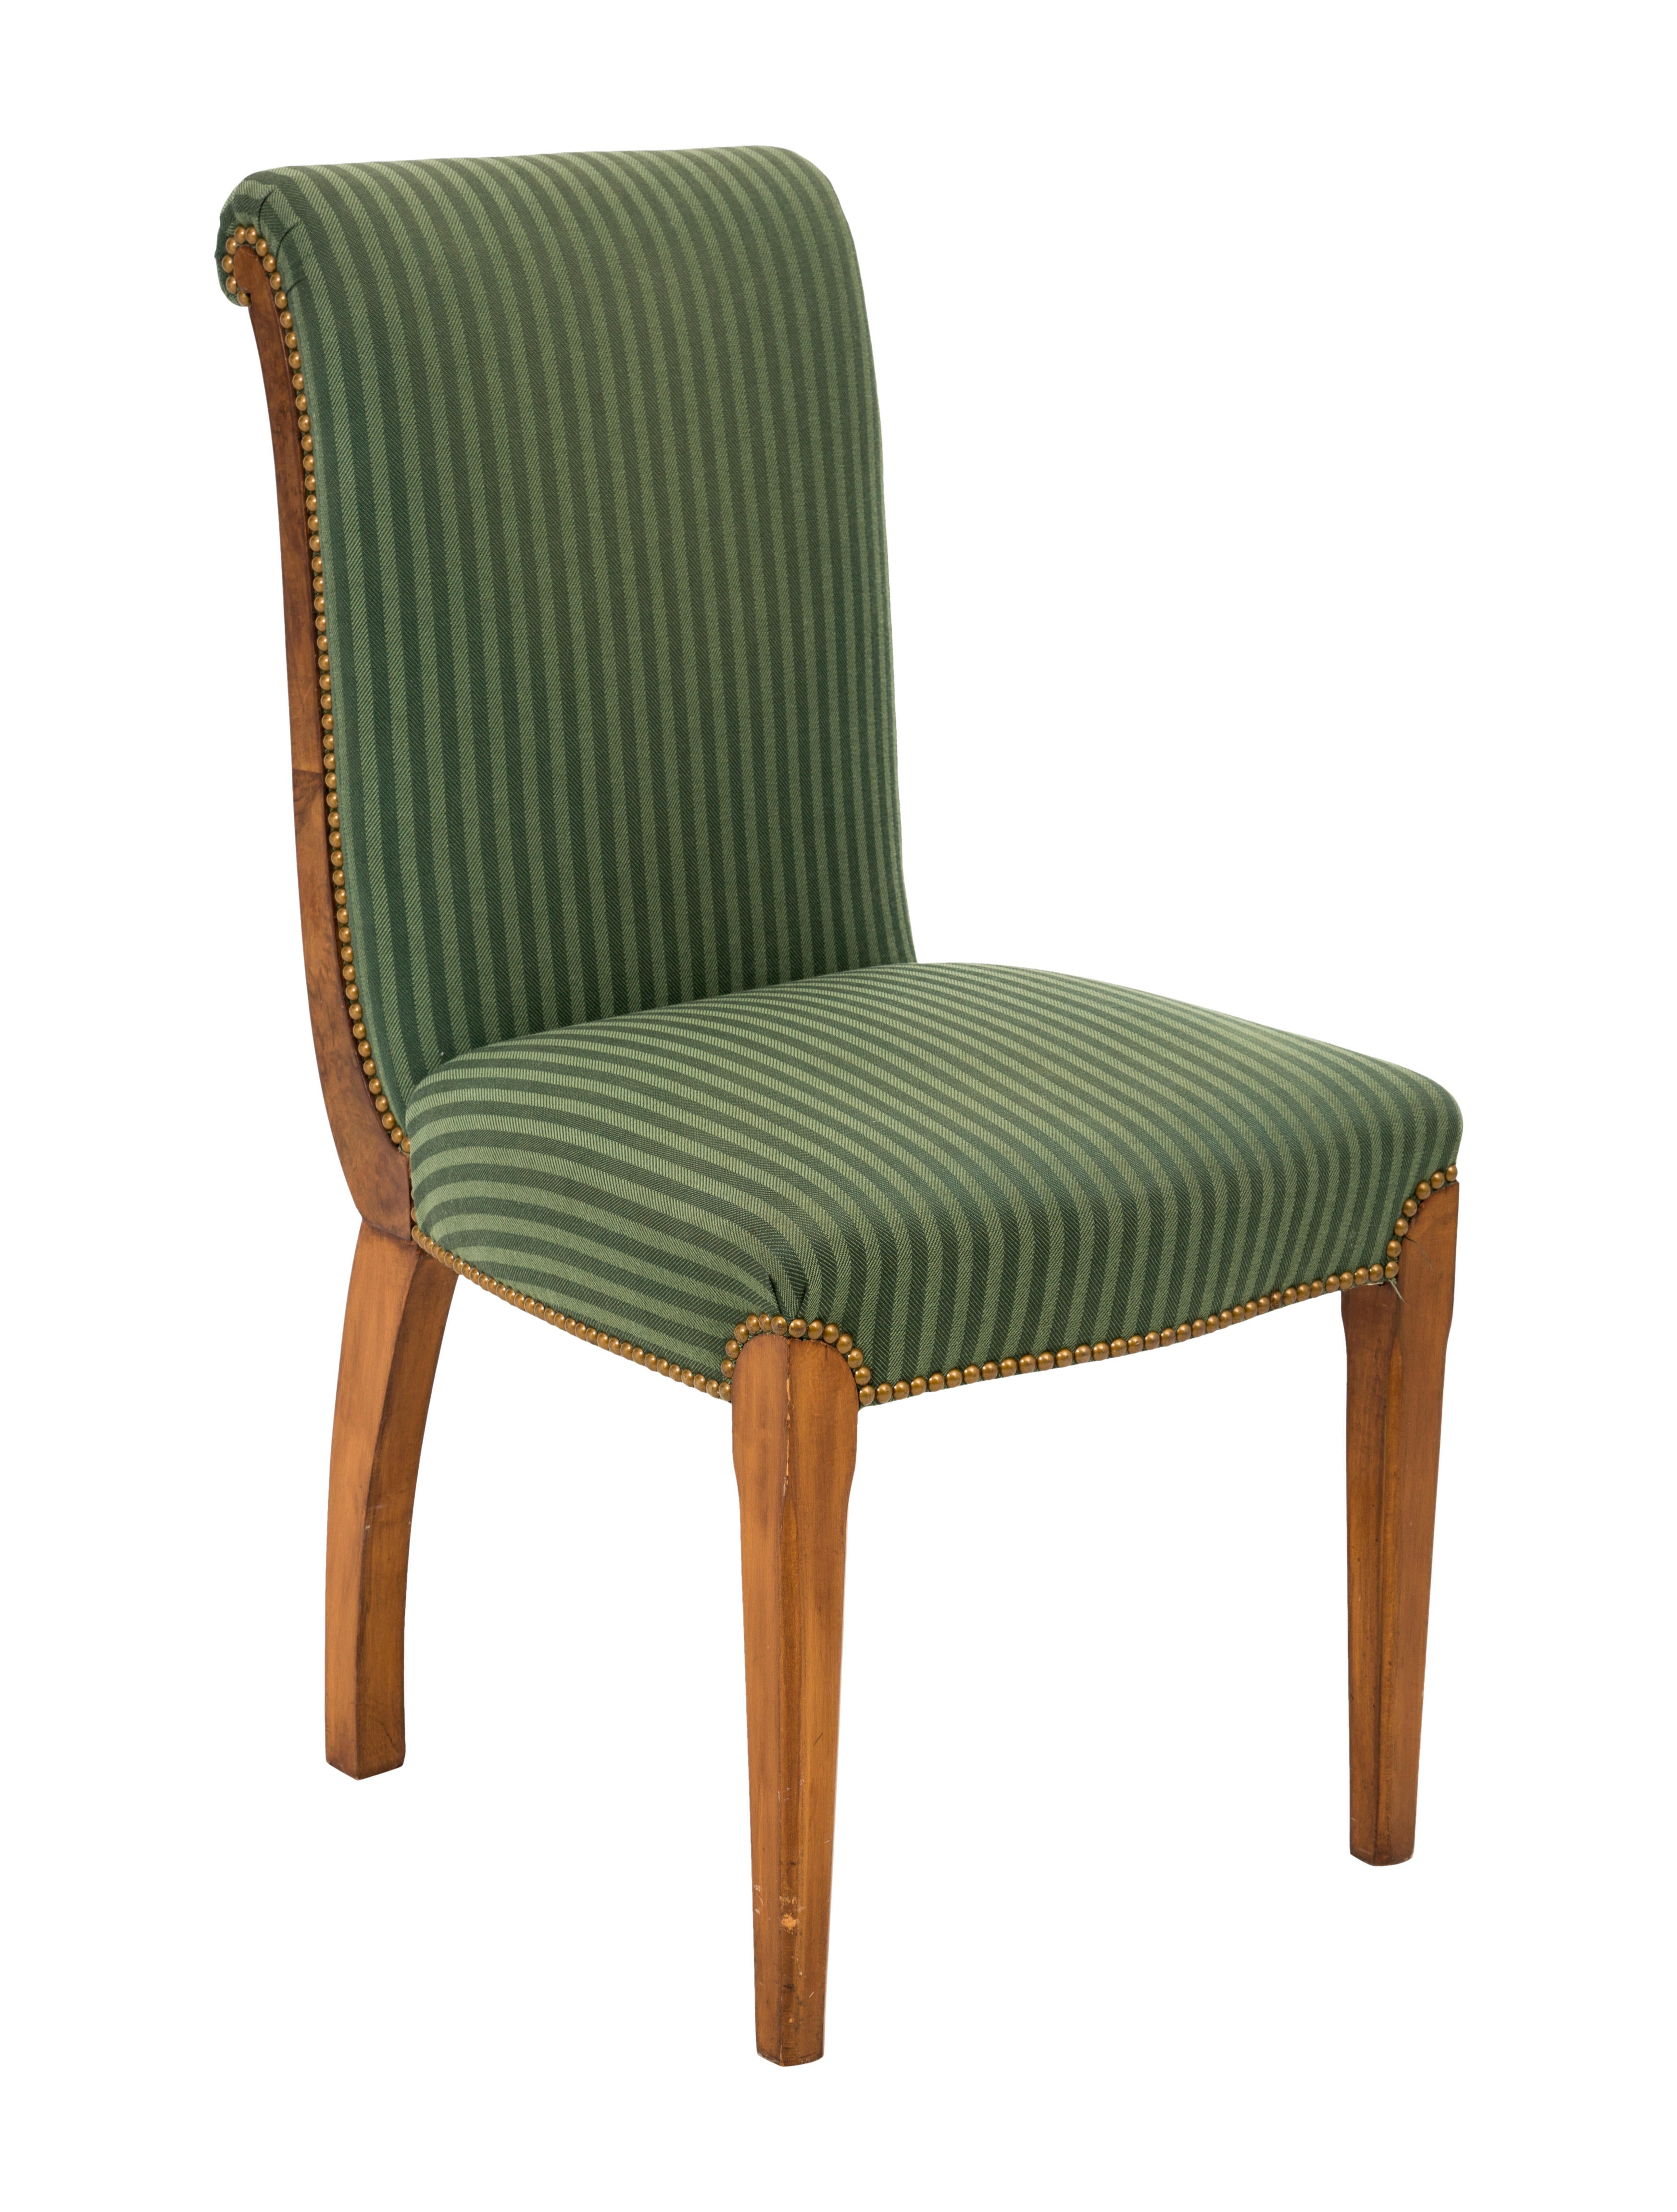 Upholstered side chair furniture chair20263 the realreal for Furniture upholsterer